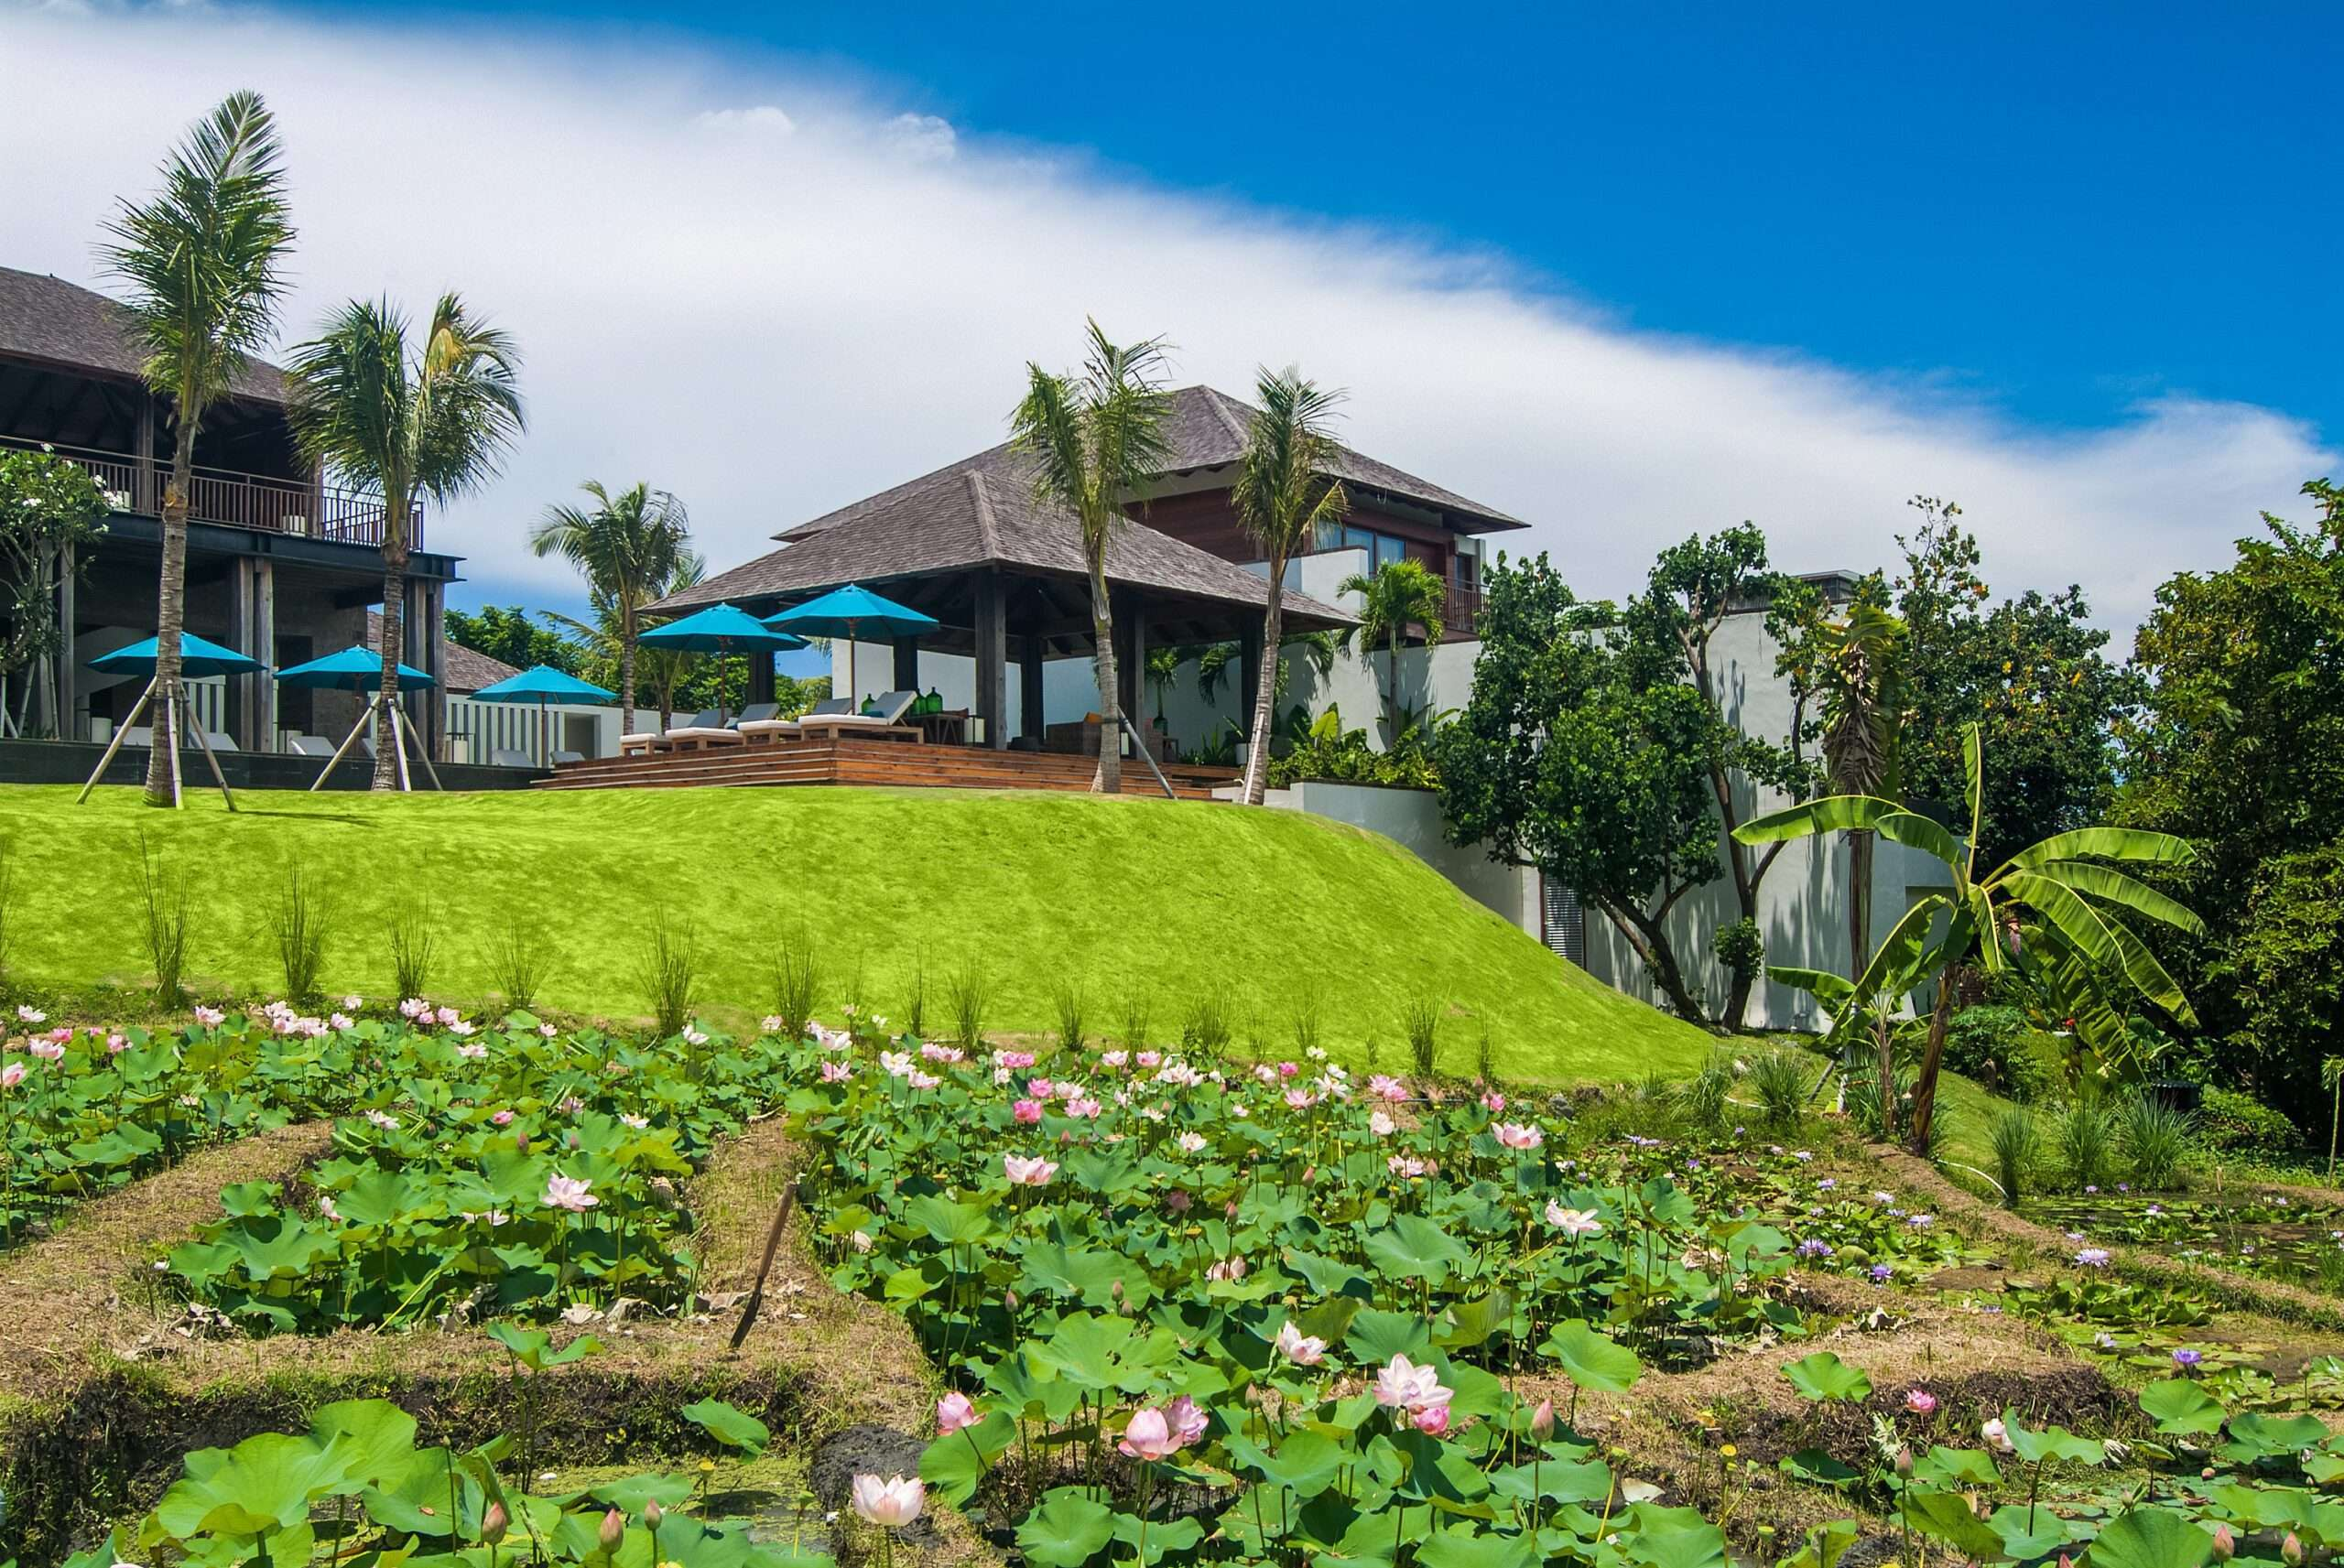 lush rice paddies and gardens surround Ambalama Bali, one of the top villas in the world